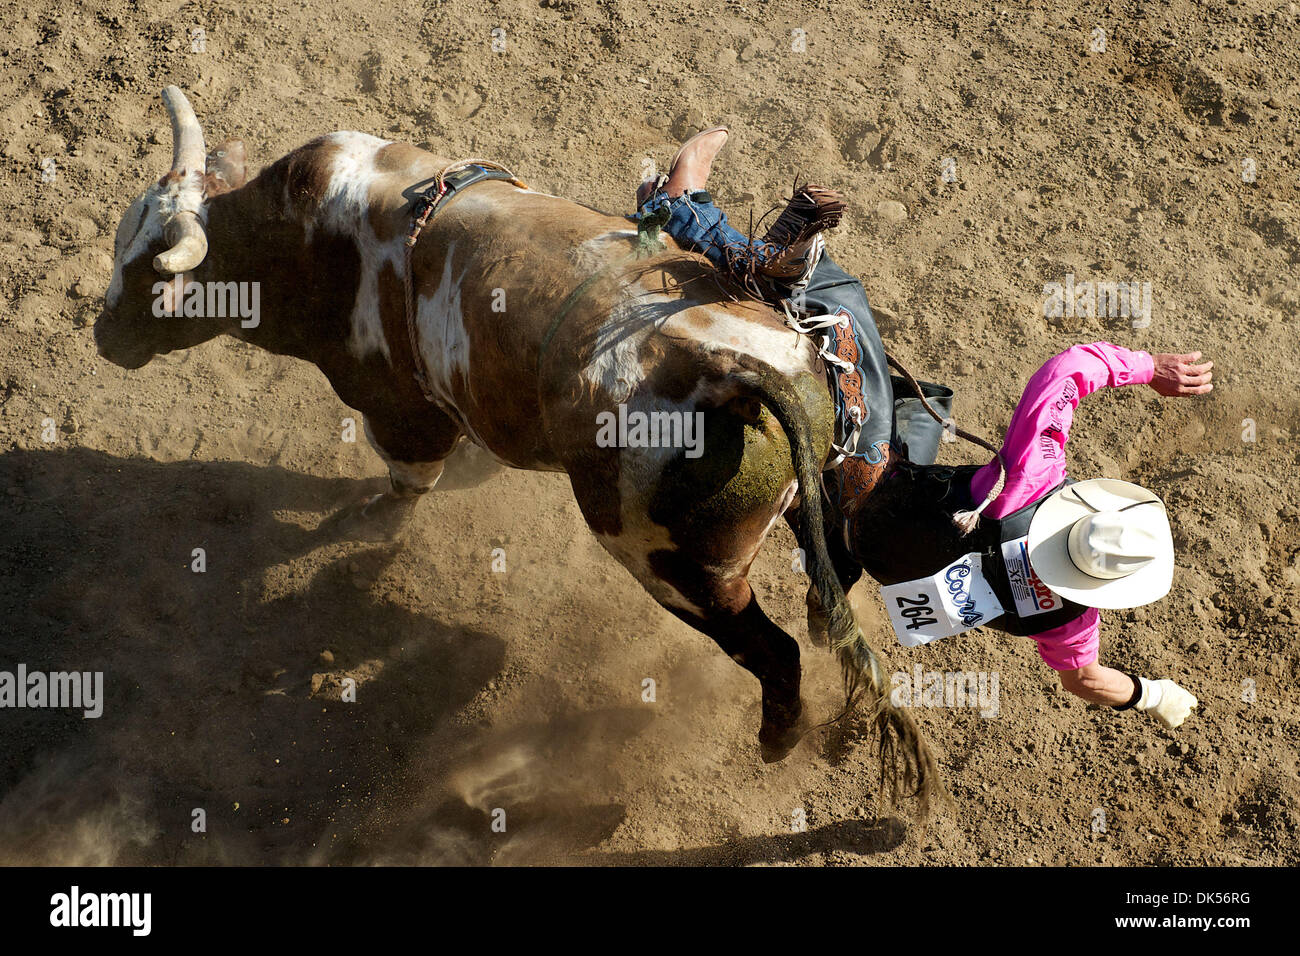 Apr. 24, 2011 - Clovis, California, U.S - ARDIE MAIER of Timber Lake, South Dakota, gets bucked off Mean One at the Clovis Rodeo. (Credit Image: © Matt Cohen/Southcreek Global/ZUMAPRESS.com) - Stock Image